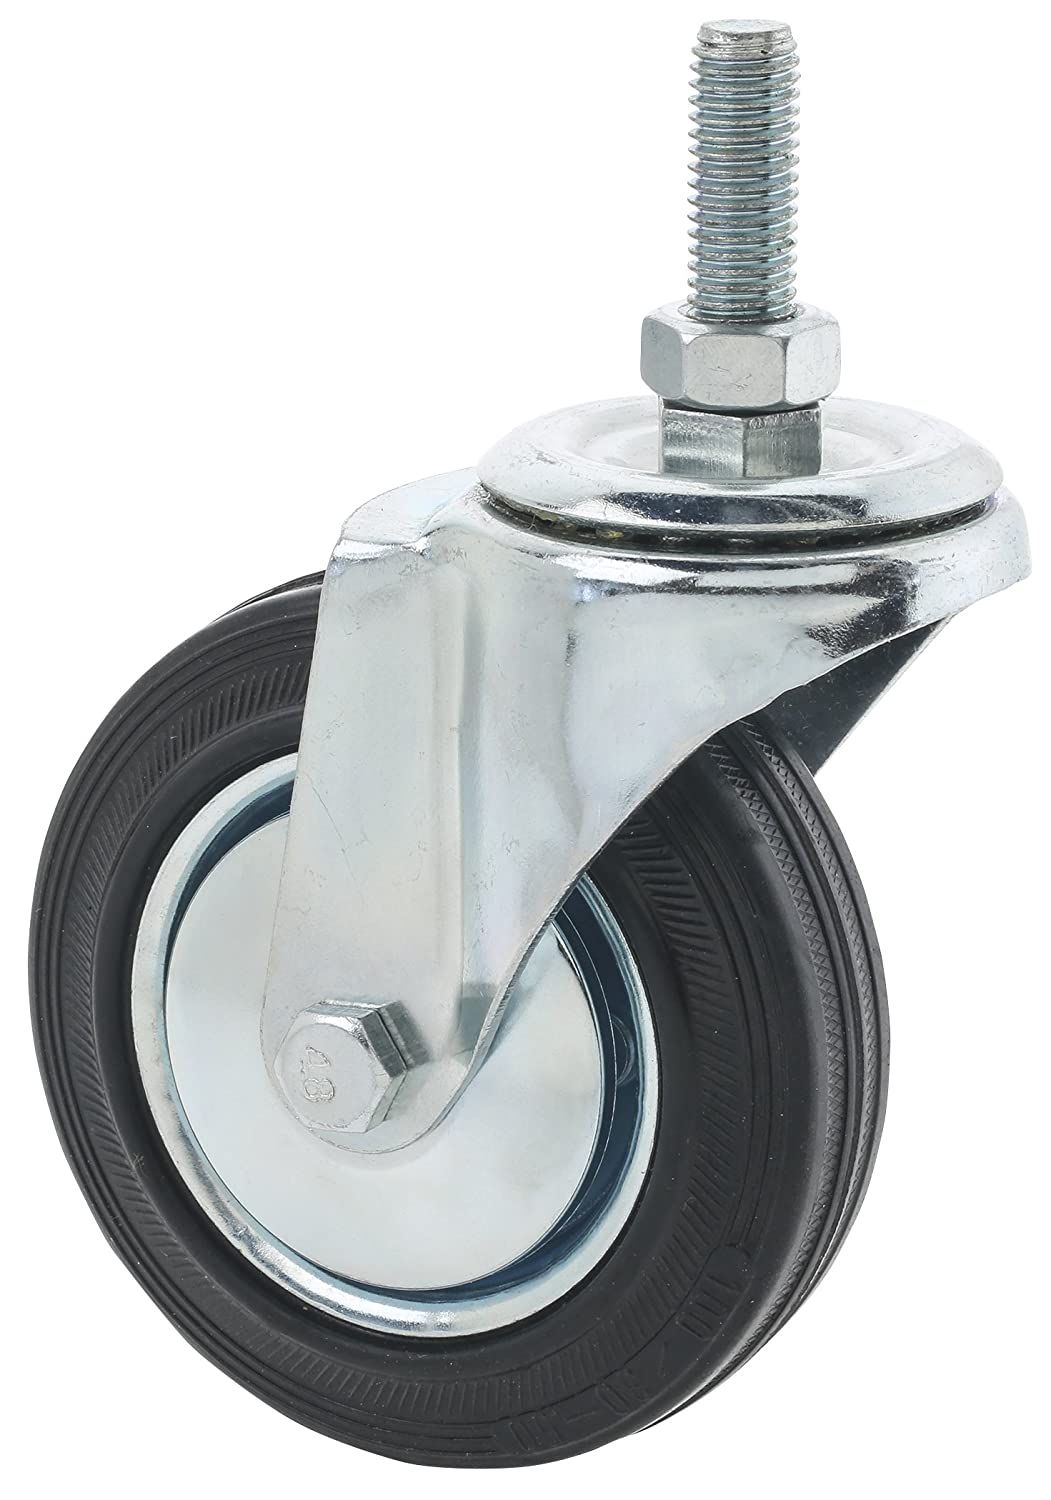 Steelex D2543 Threaded Swivel Industrial Hooded Caster 4 Inch